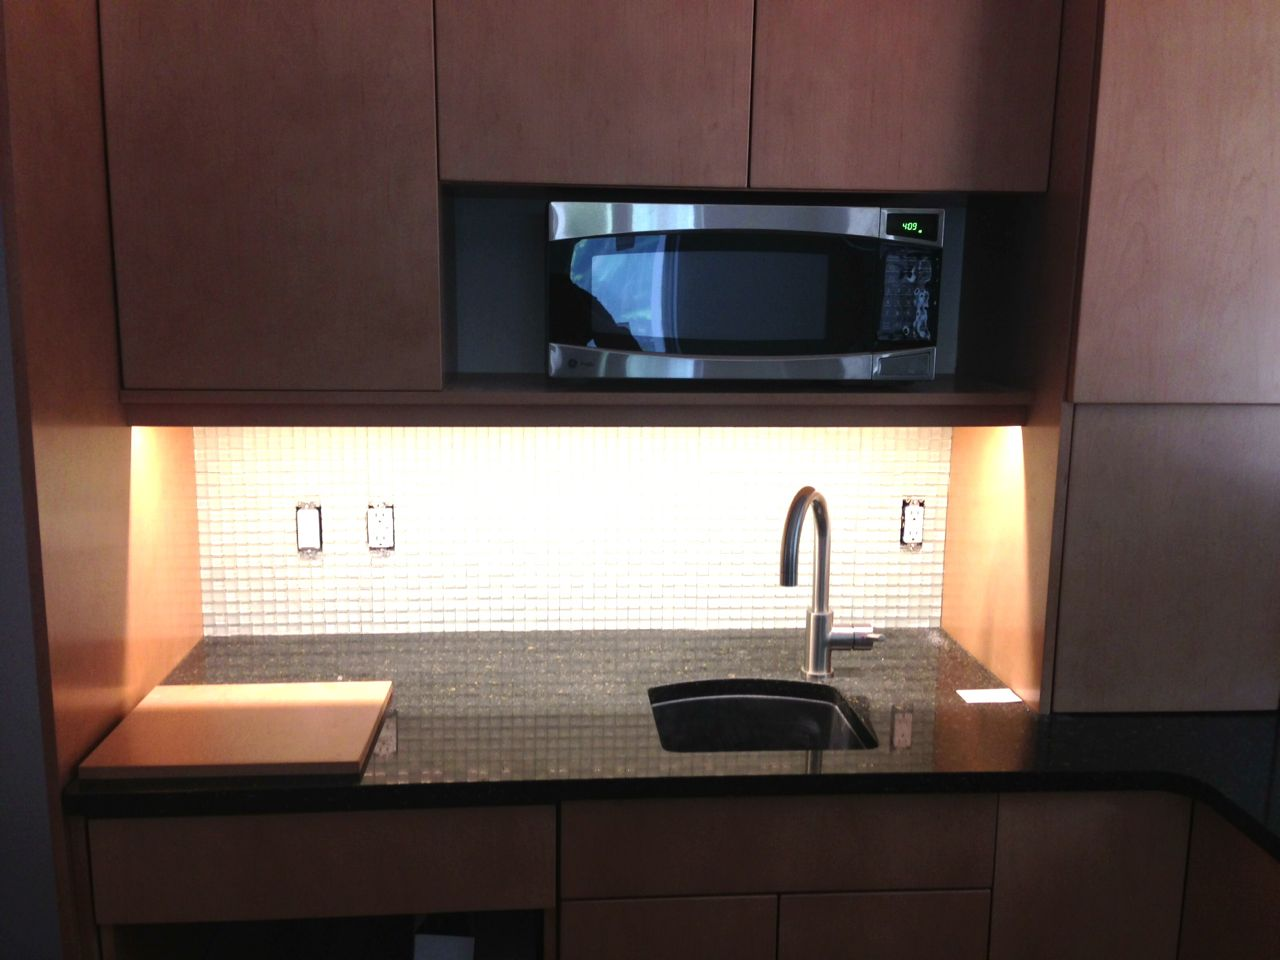 Kitchen Cabinets Above Microwave